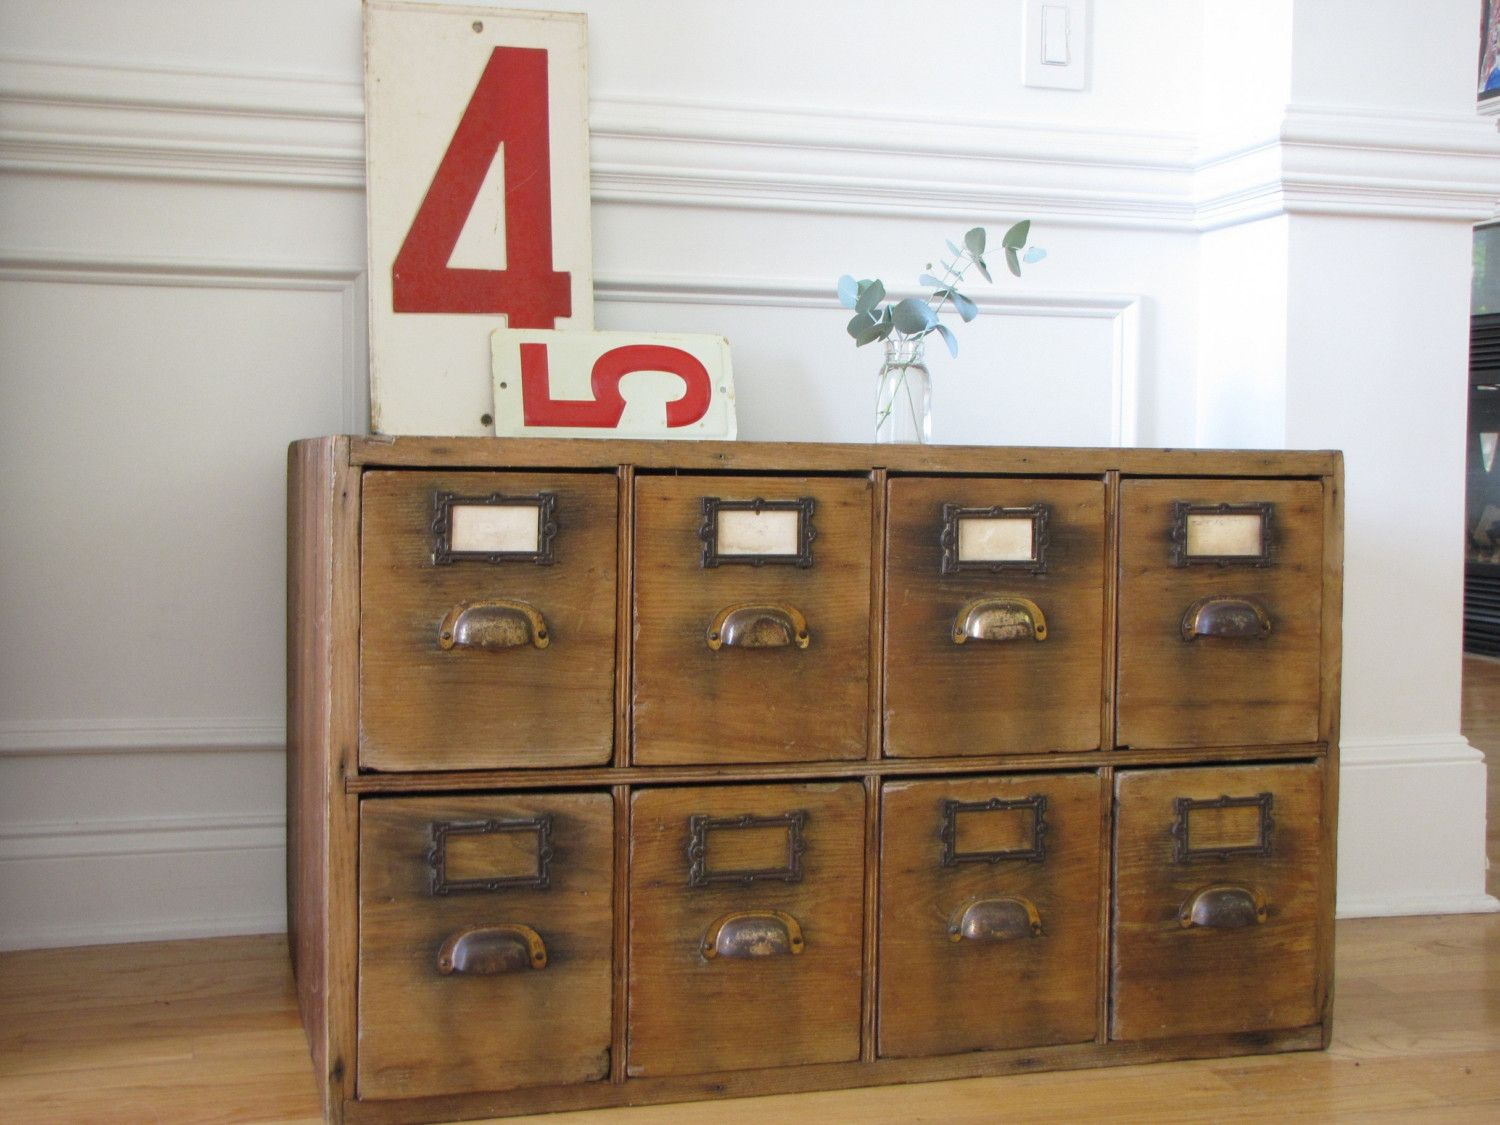 Antique Storage Cabinets Pefect For Scrapbook Studio Stuff I Love Pinterest Vintage